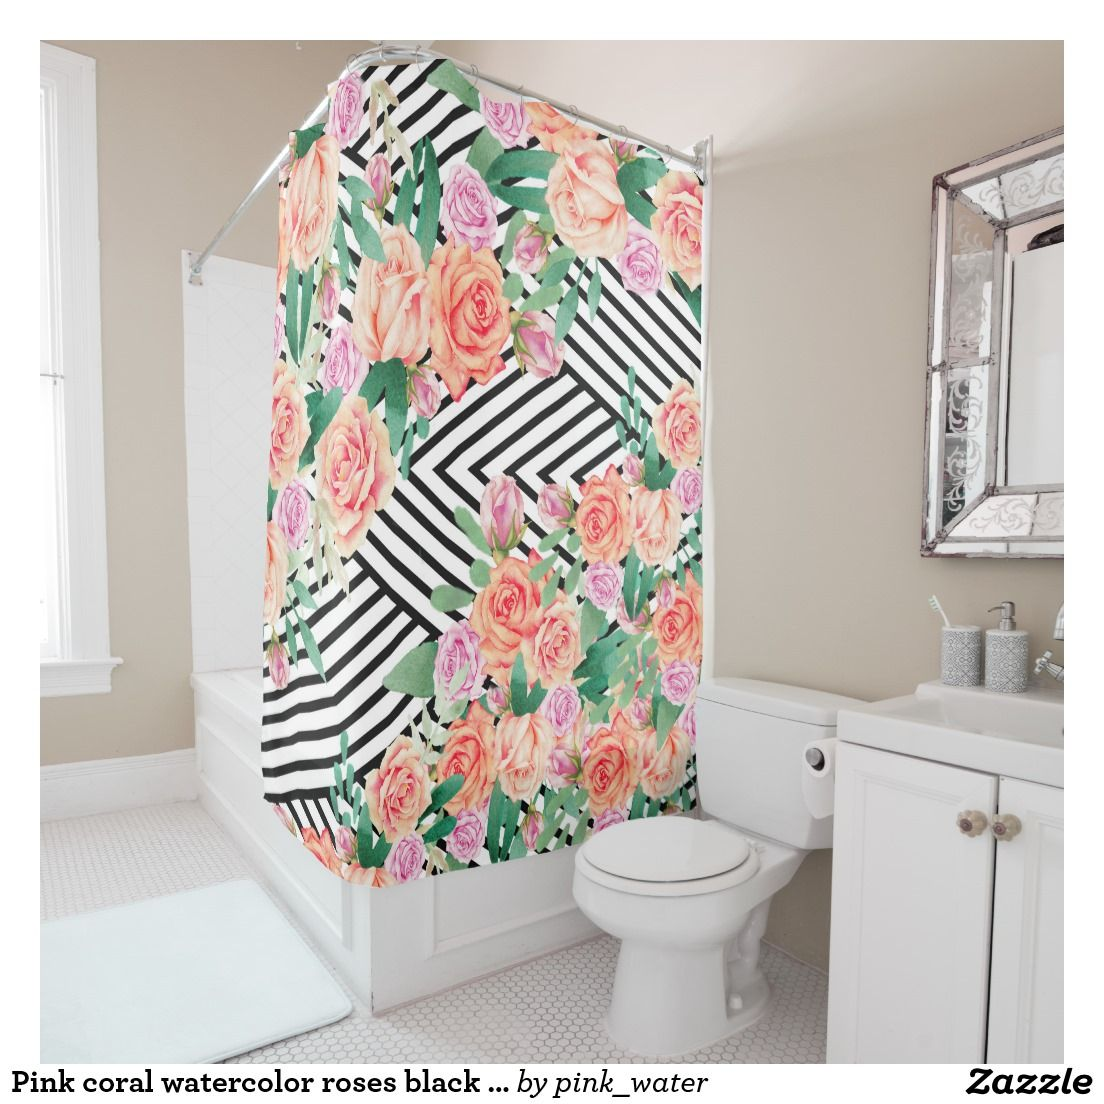 Pink coral watercolor roses black white stripe shower curtainPink coral watercolor roses black white stripe shower curtain  . Pink And White Striped Shower Curtain. Home Design Ideas